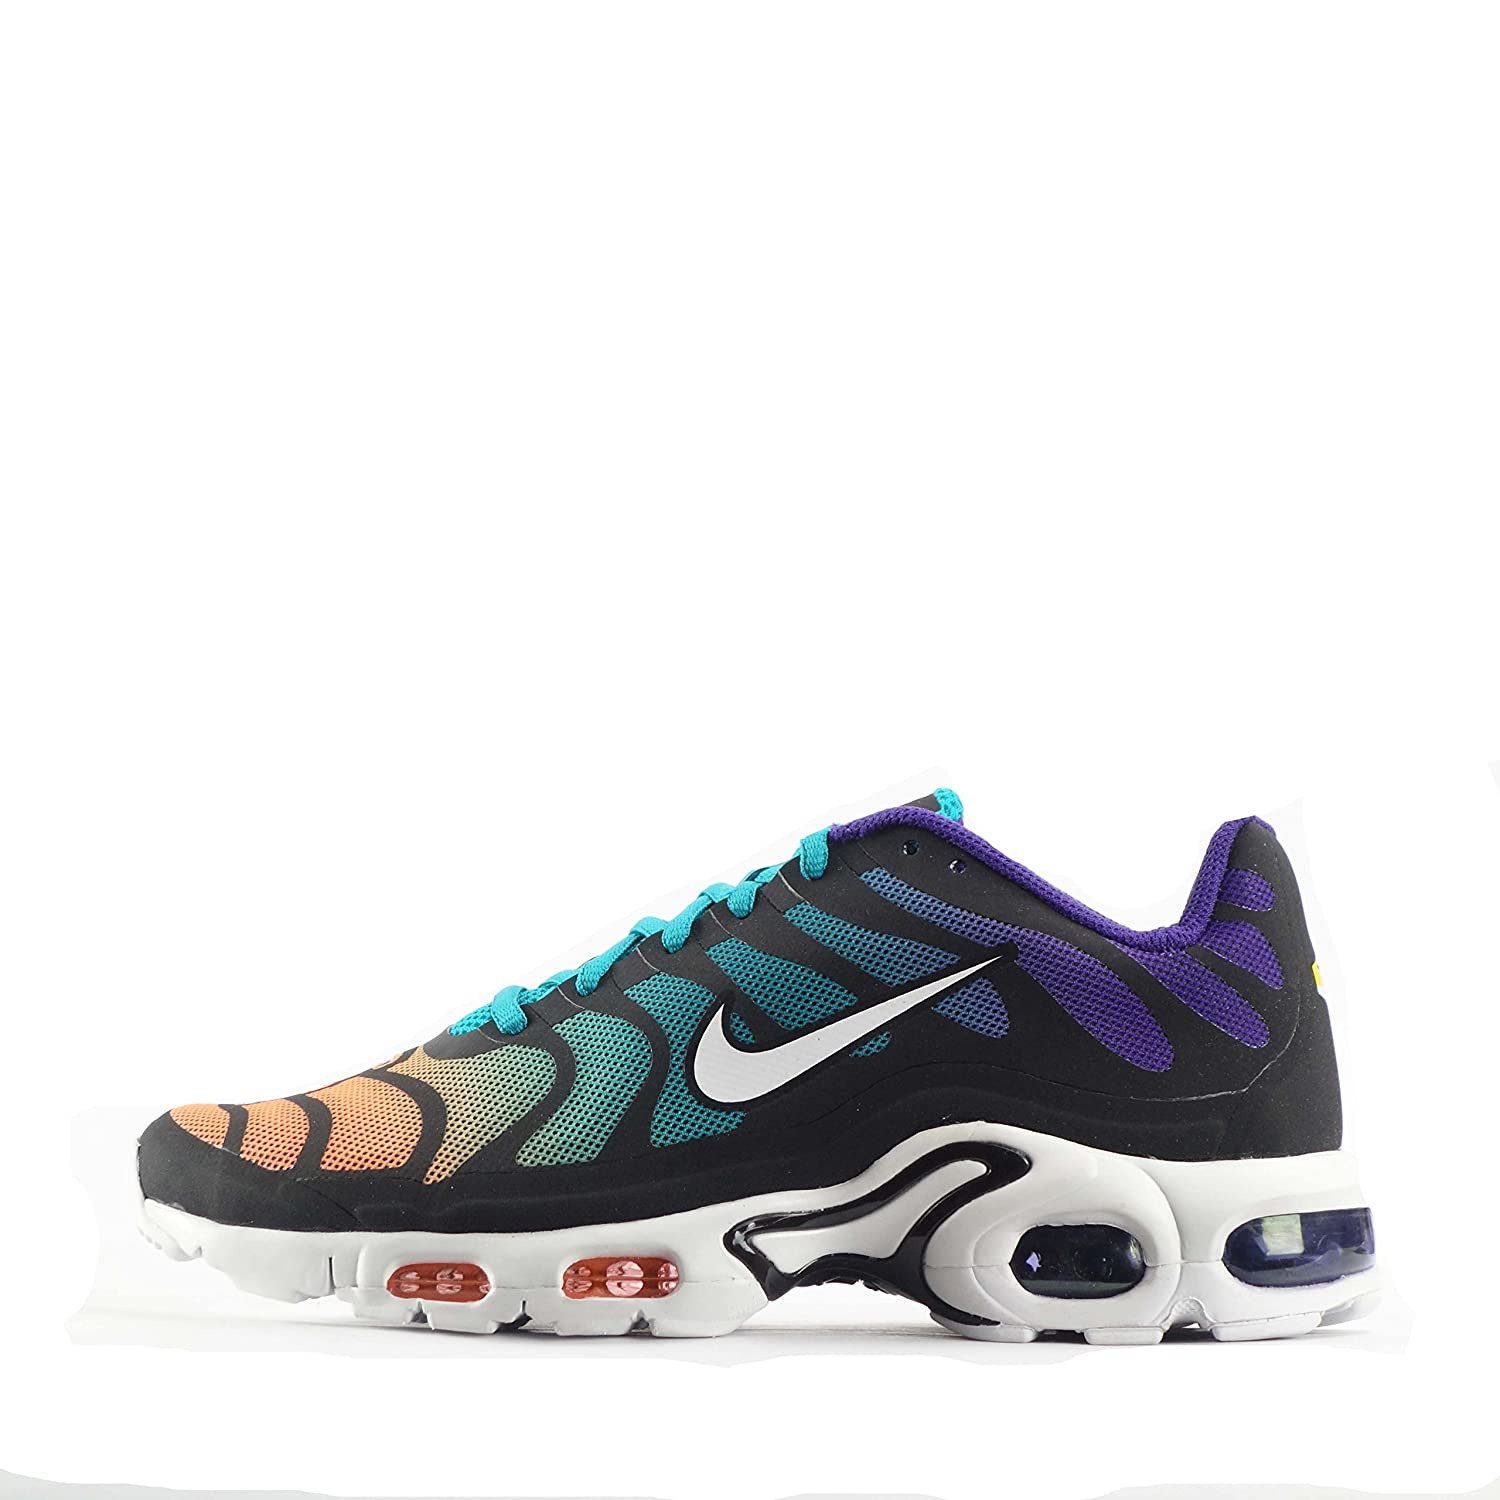 1094fcf6c7 Nike Air Max Plus Hyperfuse TN Tuned Mens Shoes (UK-6): Amazon.co.uk: Shoes  & Bags